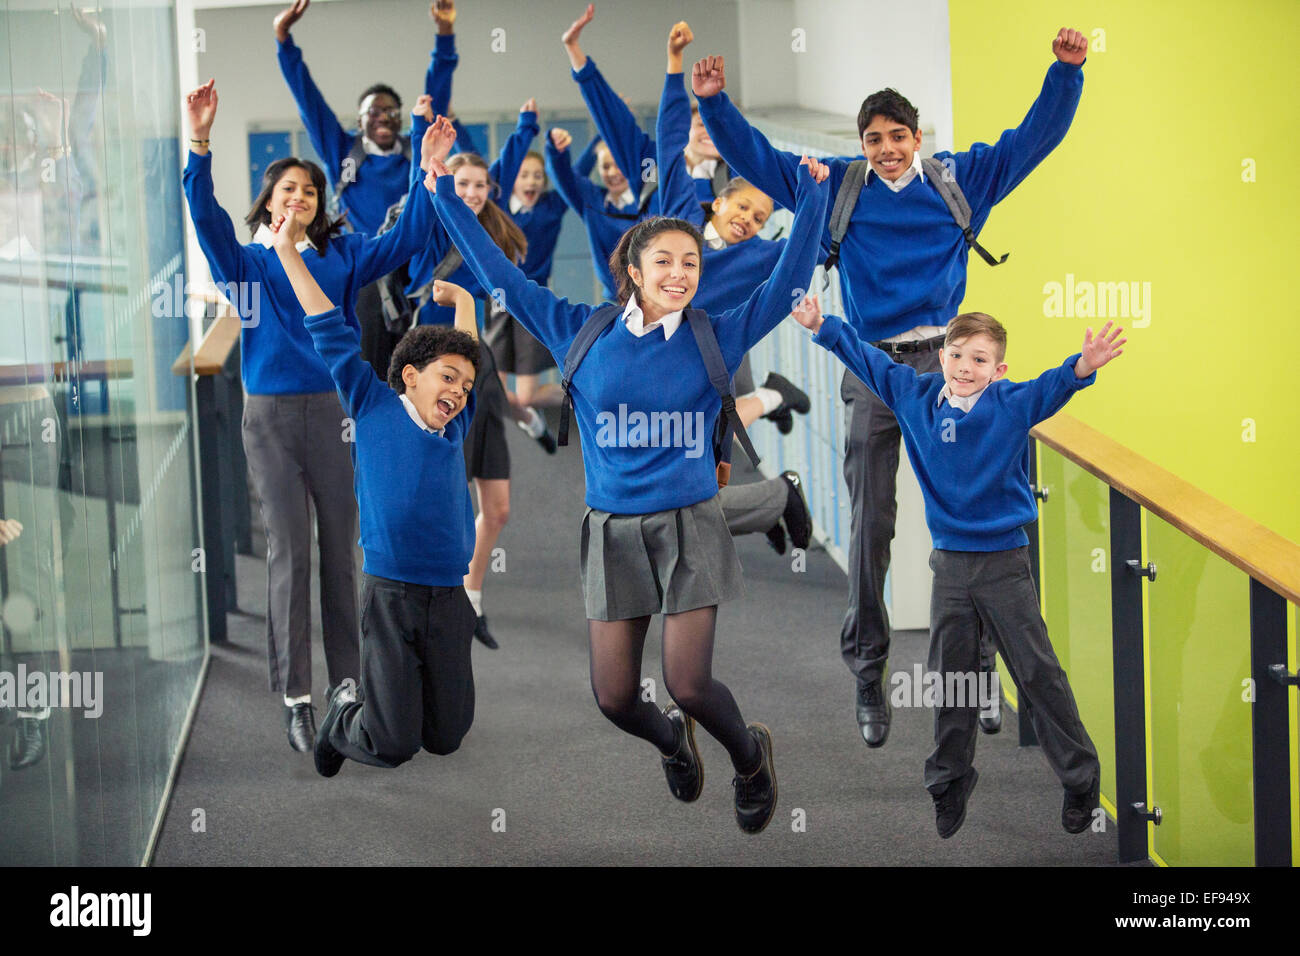 Enthusiastic high school students wearing school uniforms smiling and jumping in school corridor - Stock Image